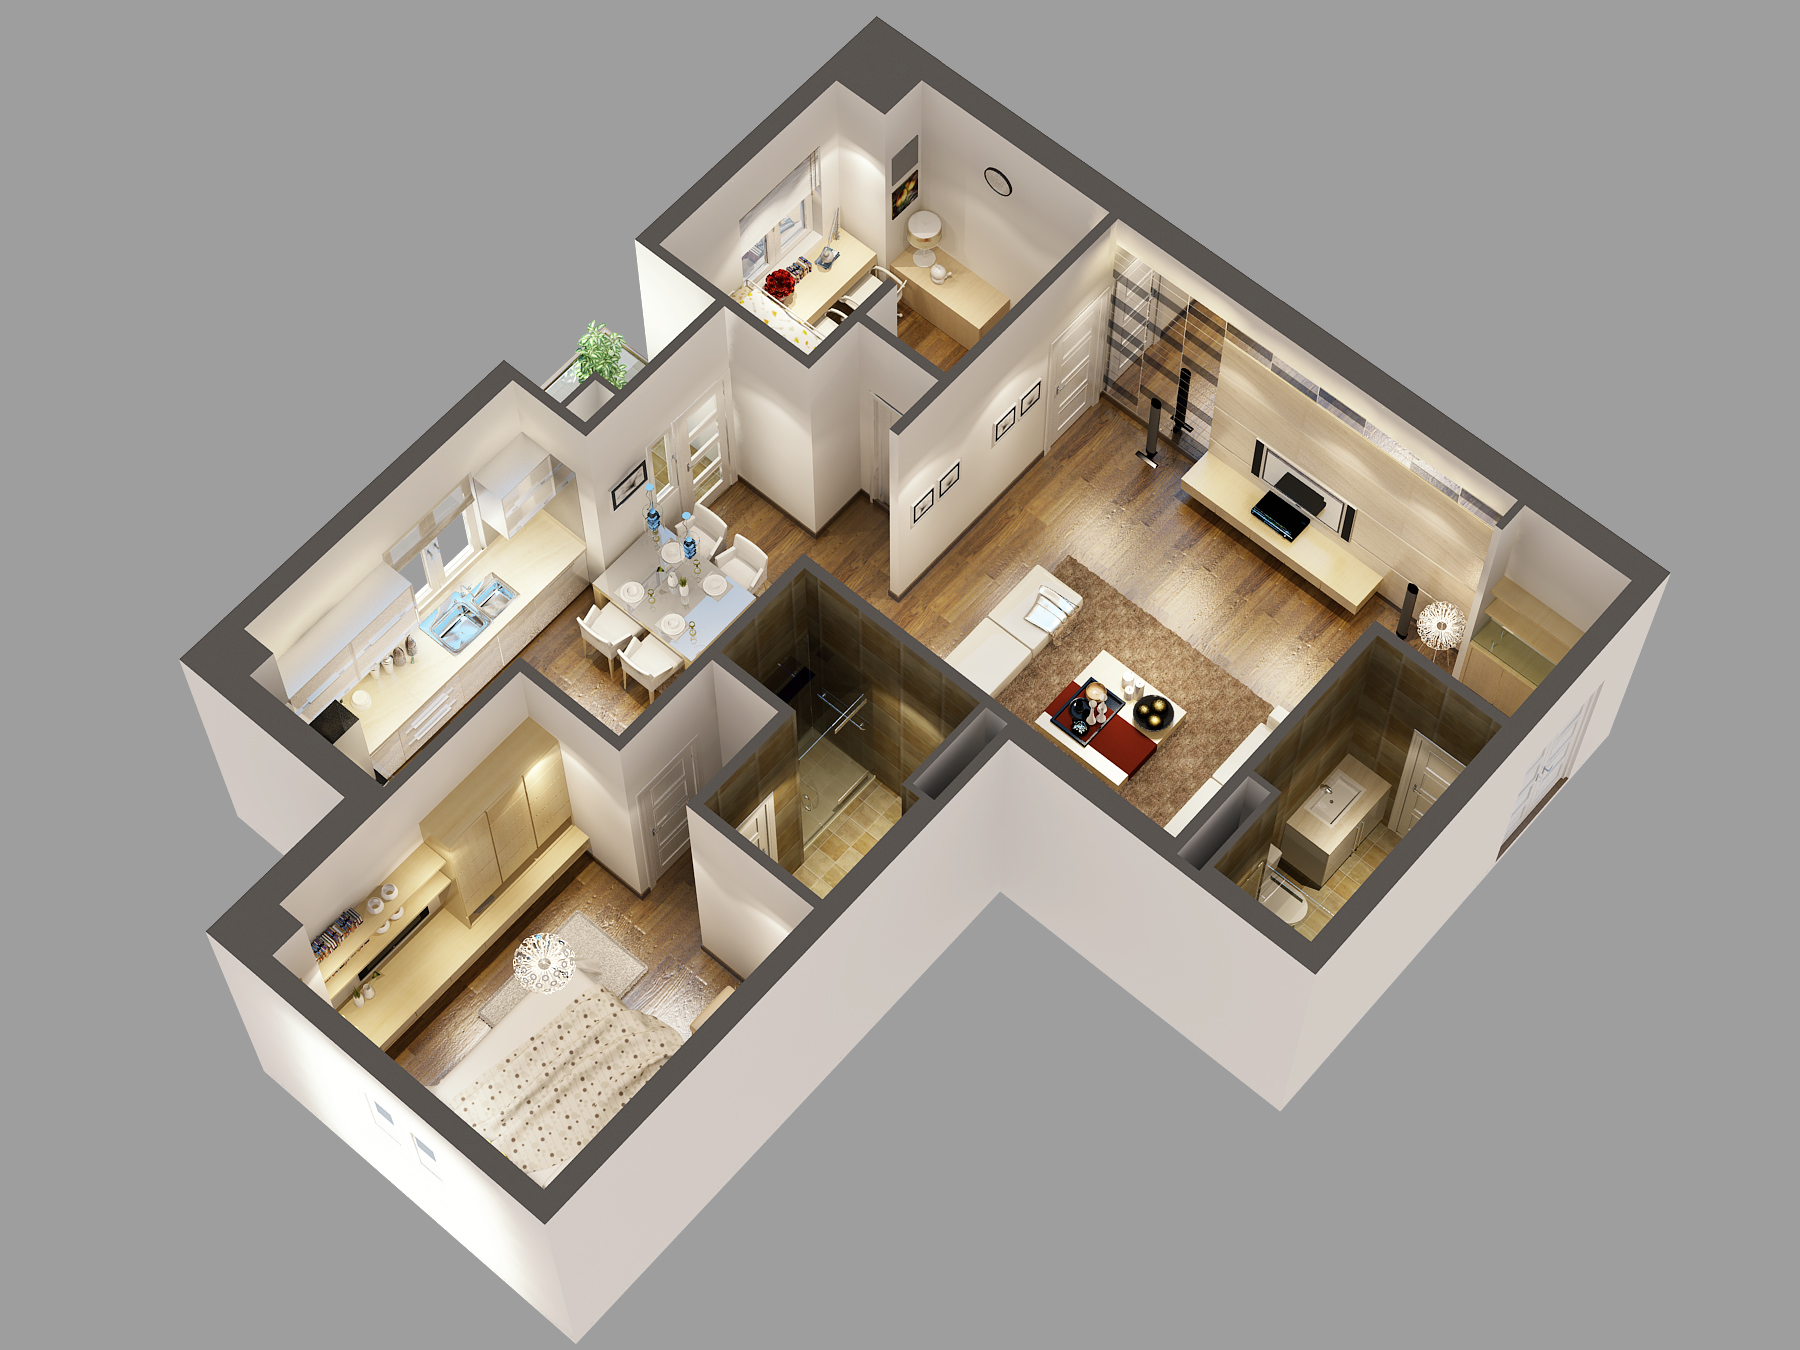 Detailed house cutaway 3d model 3d model max for Home design website free